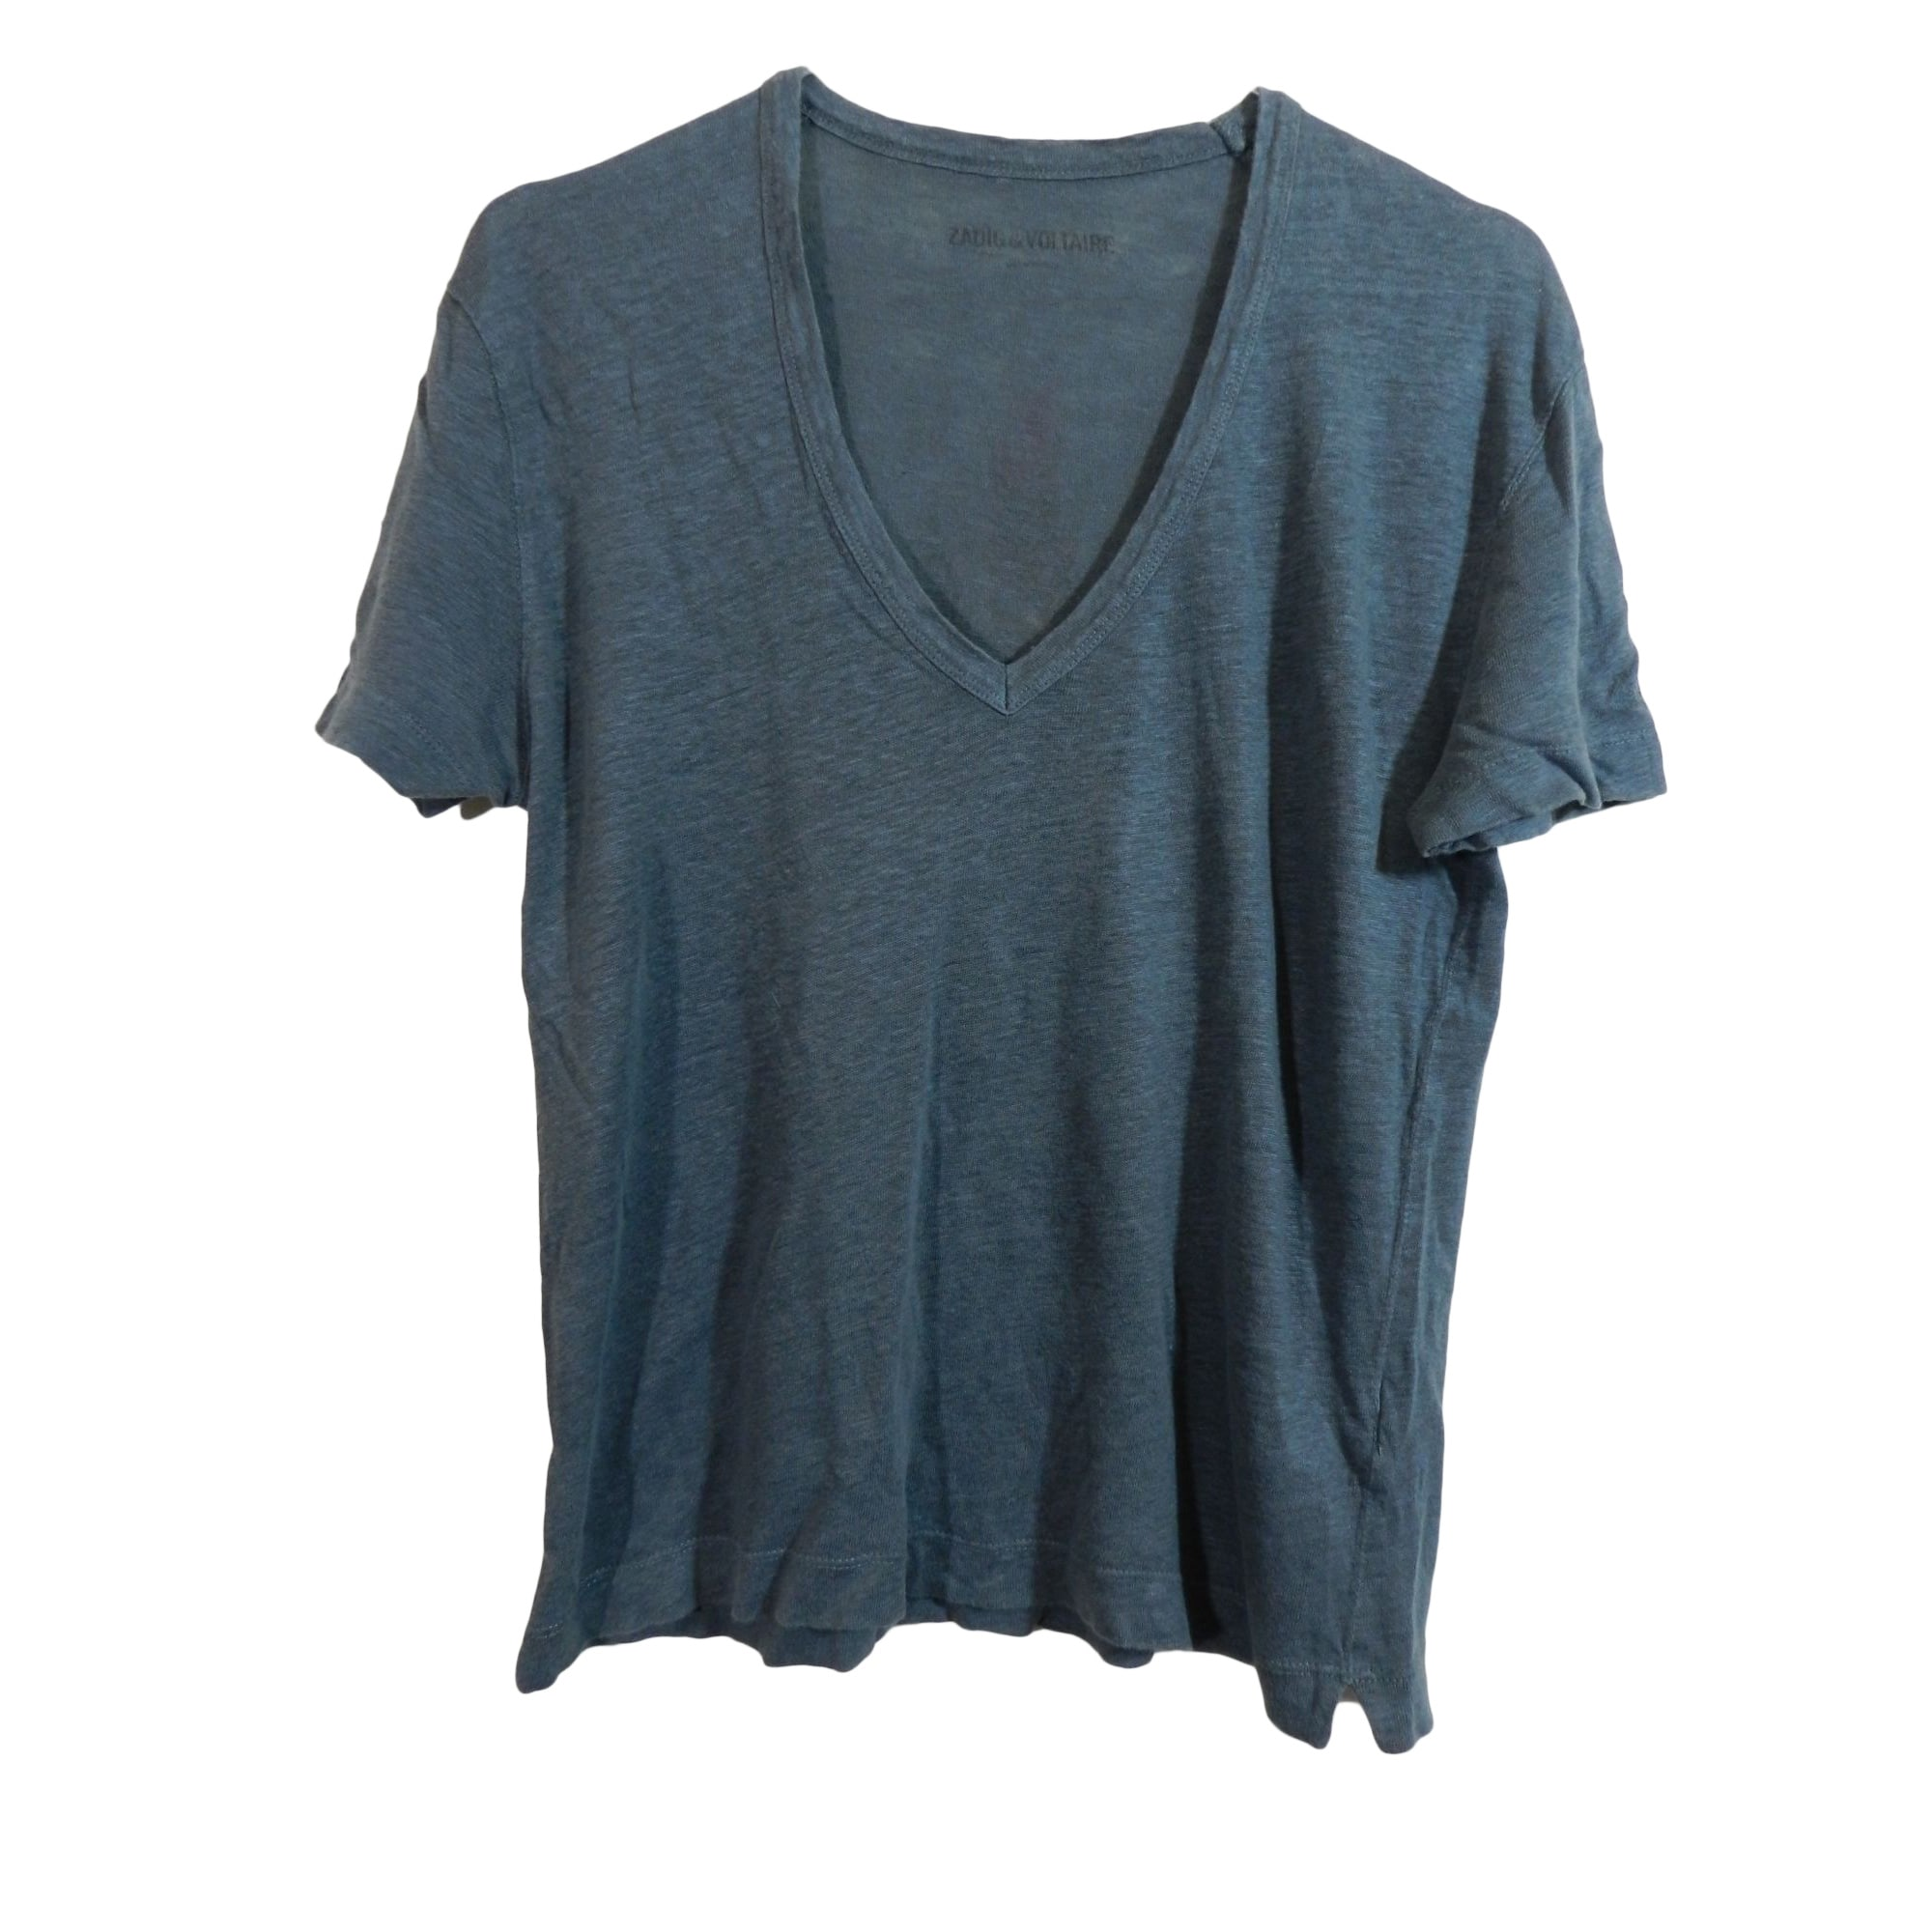 Top, T-shirt ZADIG & VOLTAIRE Gray, charcoal